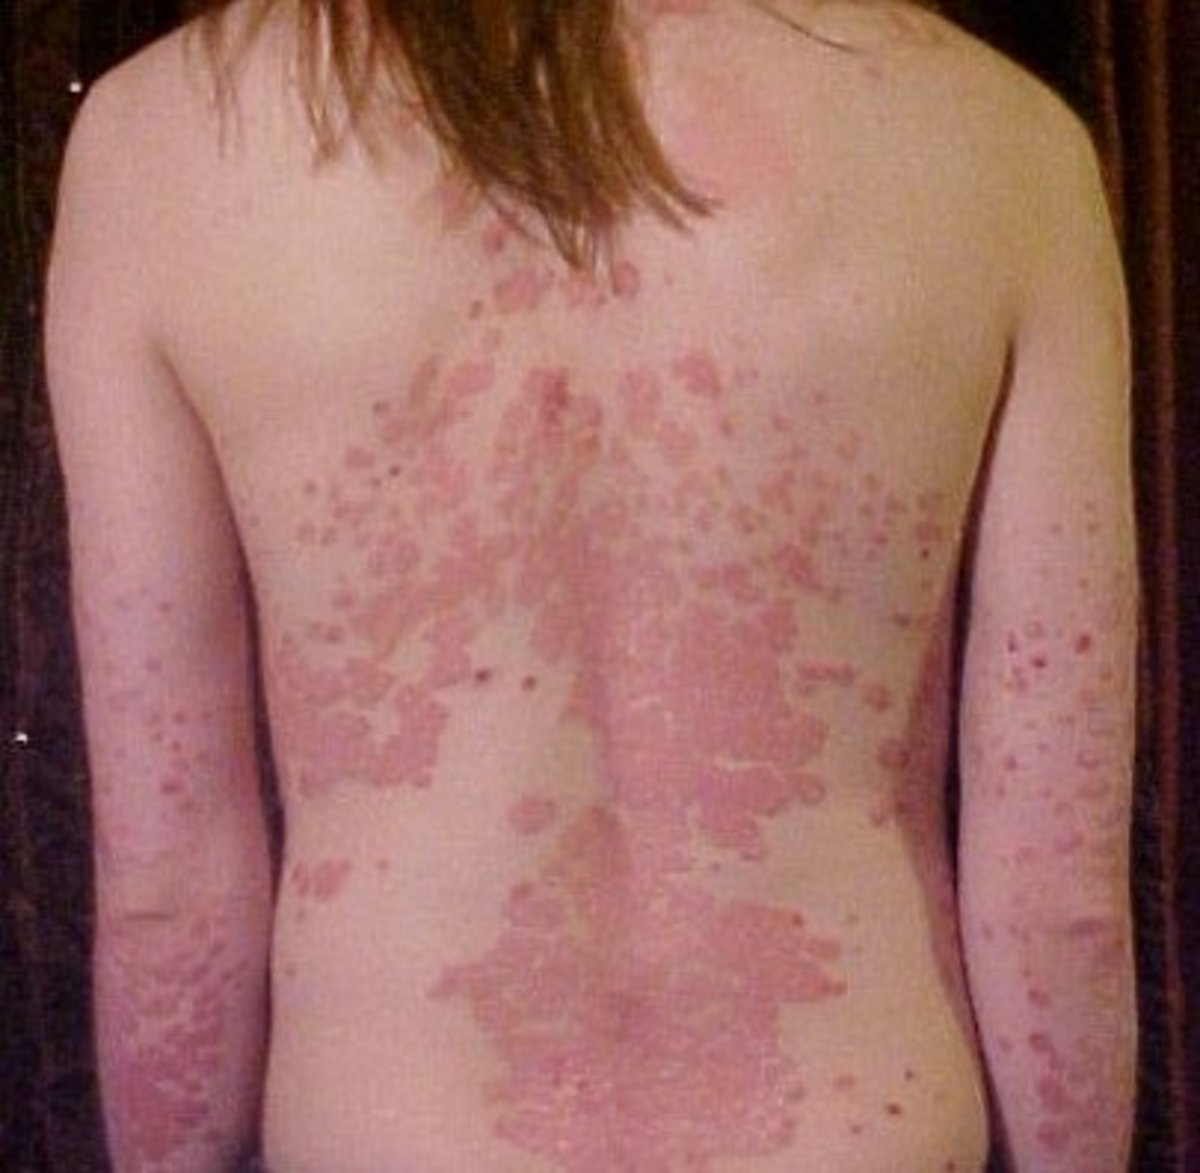 A Variety of Skin Disorders